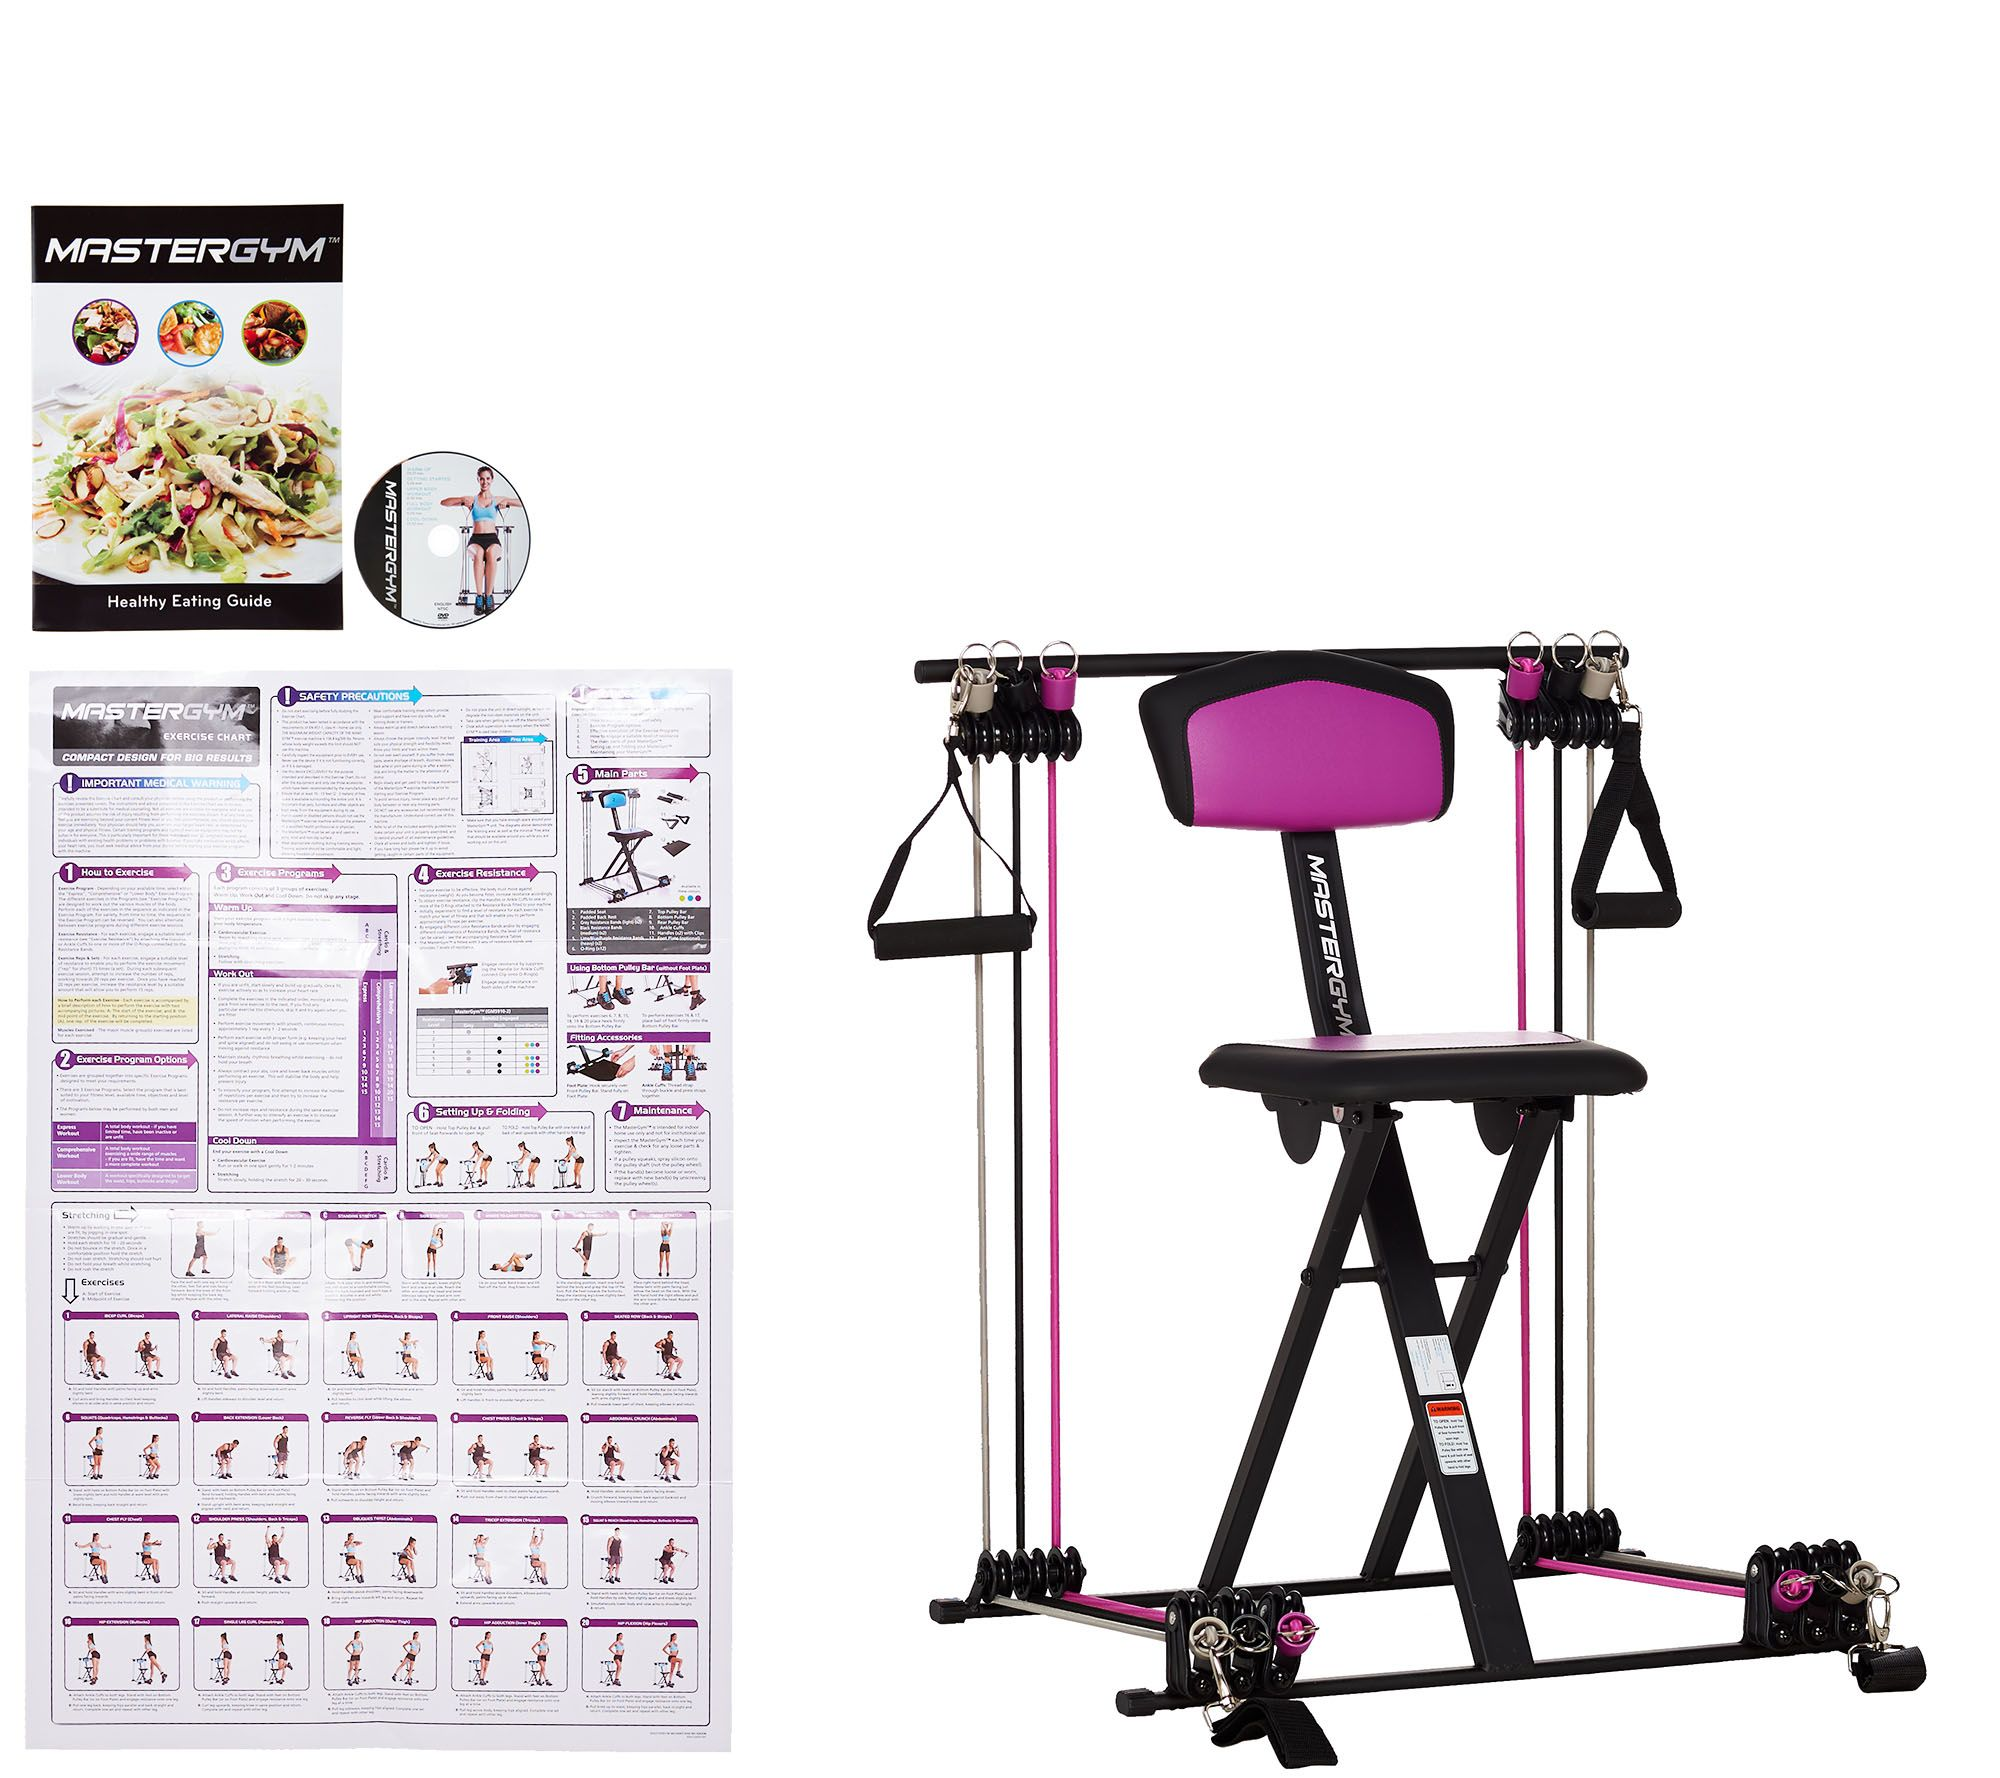 Quot as is master gym compact fitness chair with dvd wall